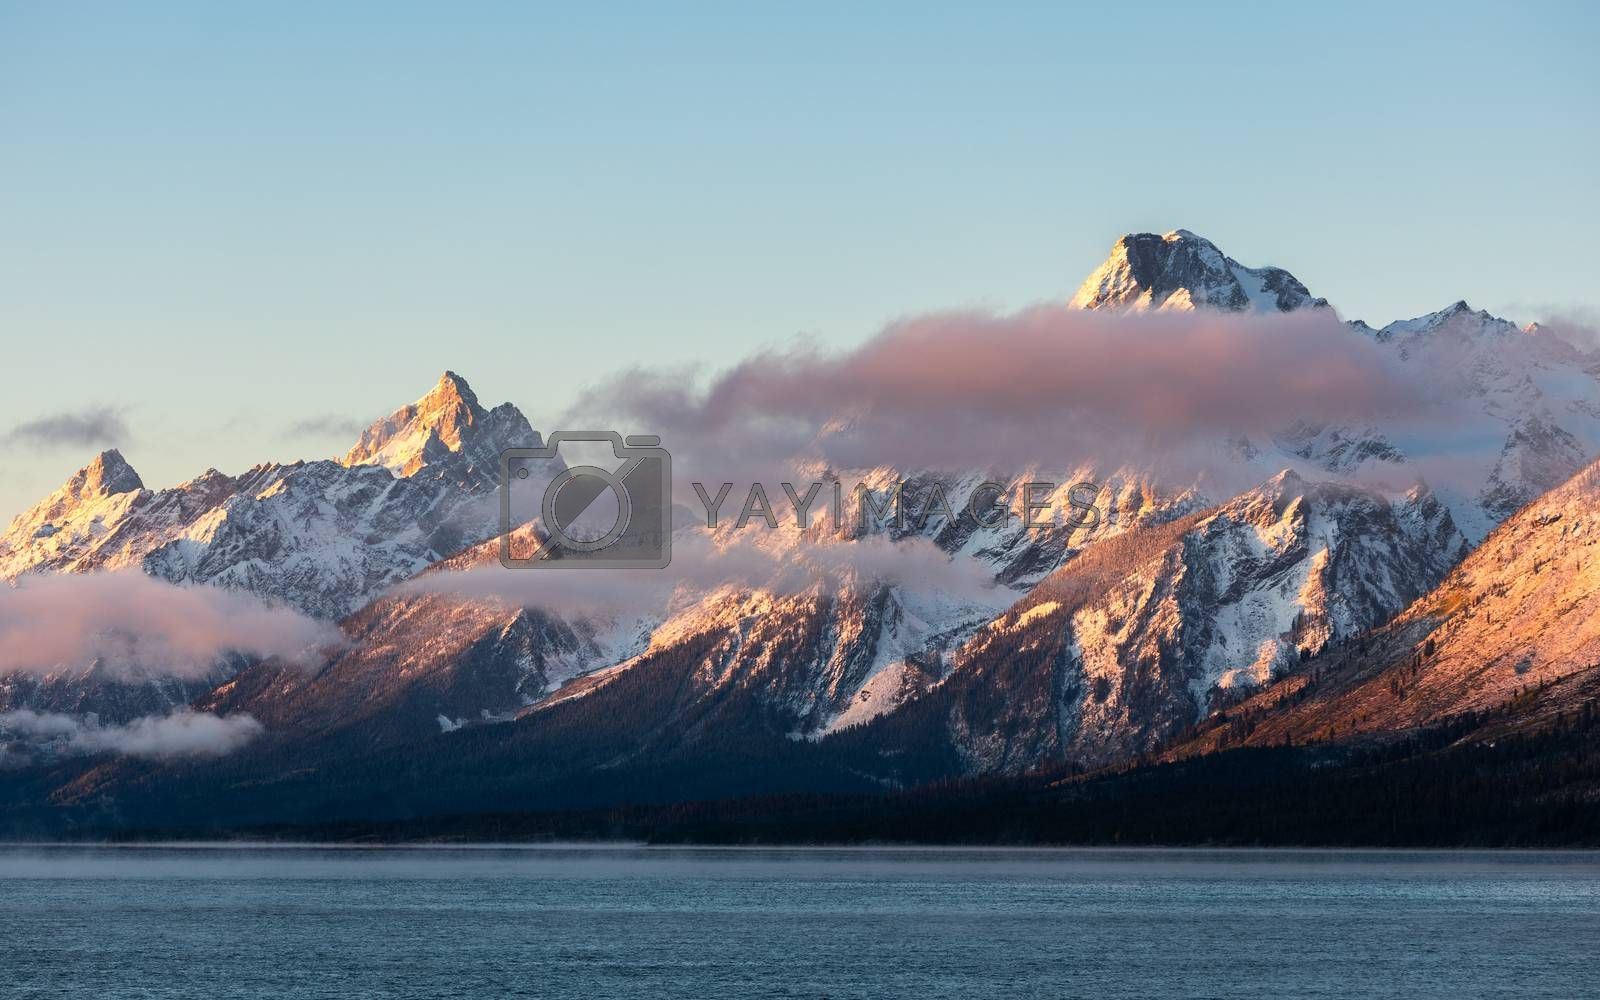 Mountain range covered by snow and cloud at sunrise of Jackson Lake, Grand Teton National Park, Wyoming, USA.